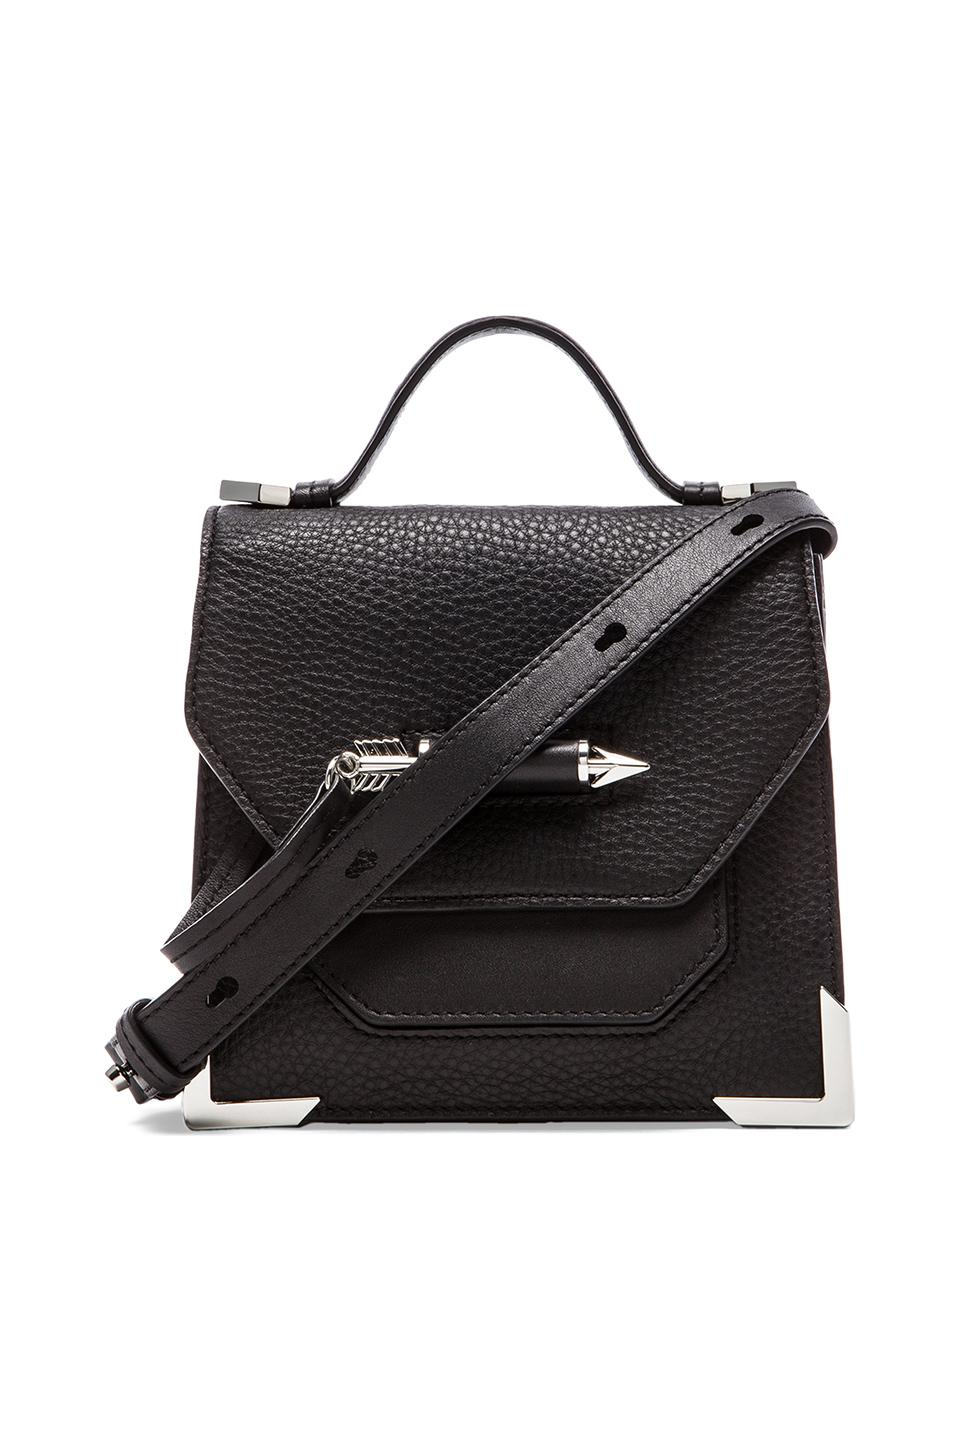 Mackage Rubie Satchel in Black